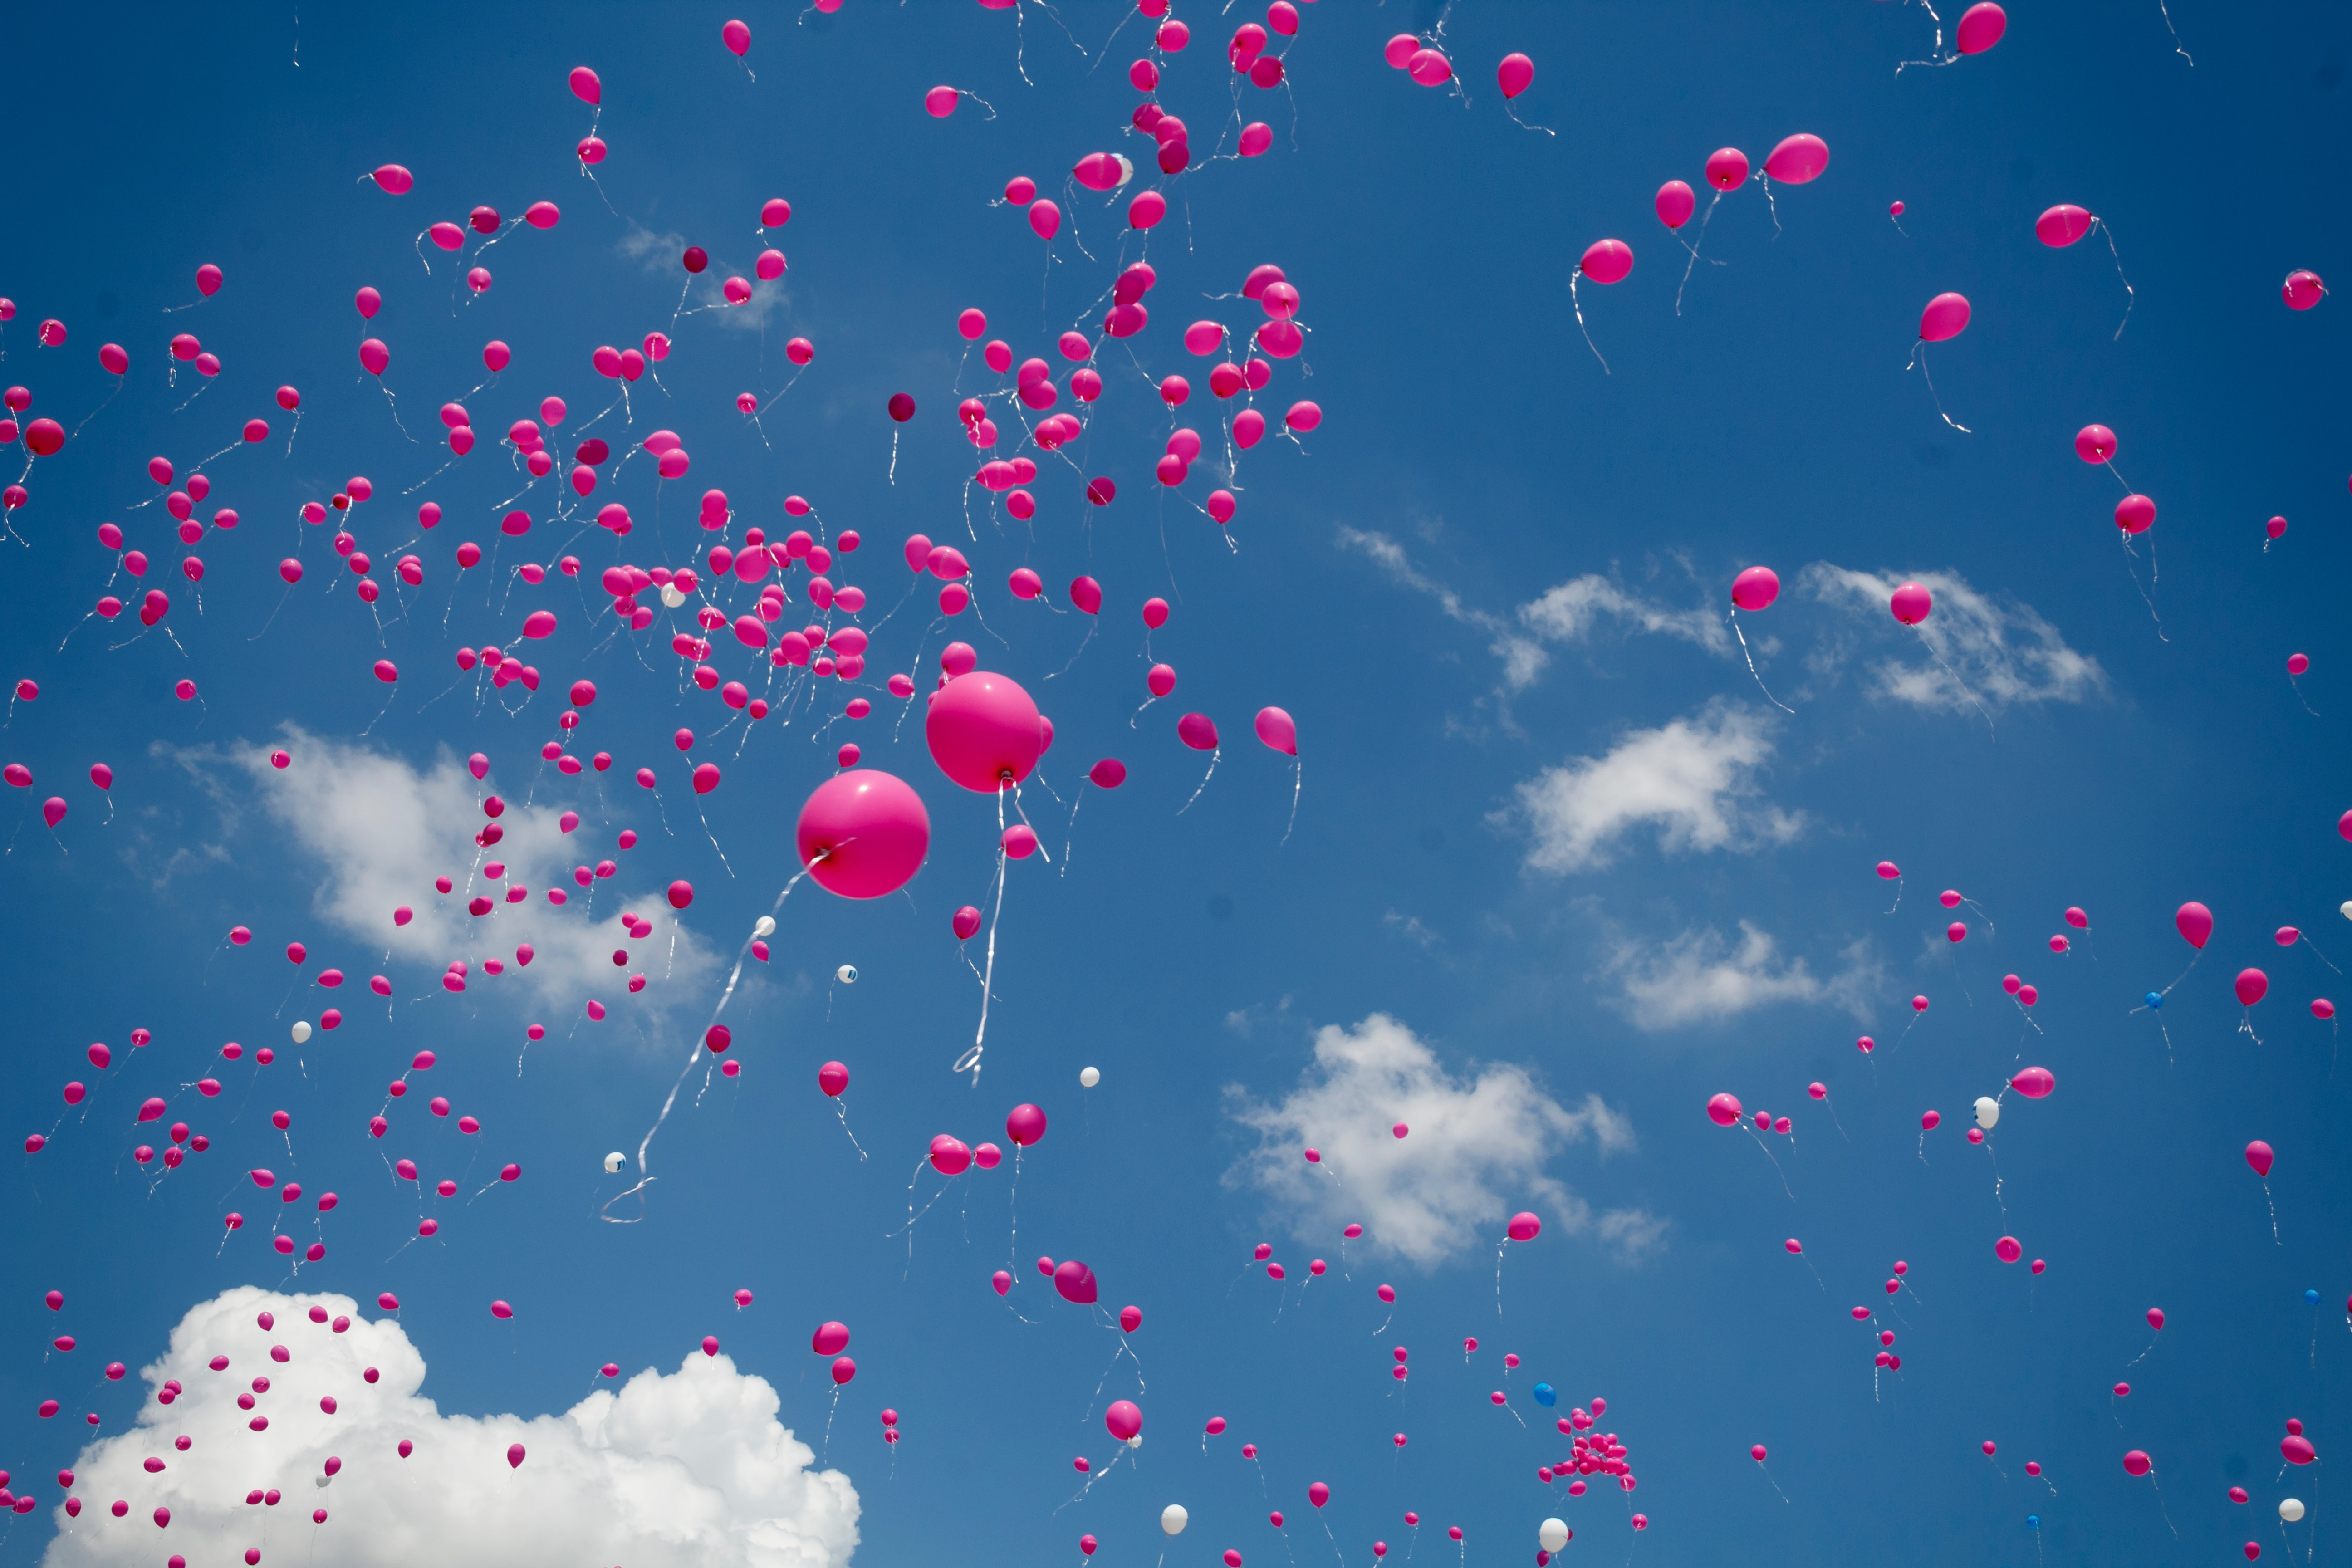 Pink balloons float upwards against a blue sky with white clouds, c. Peter Boccia, Unsplash